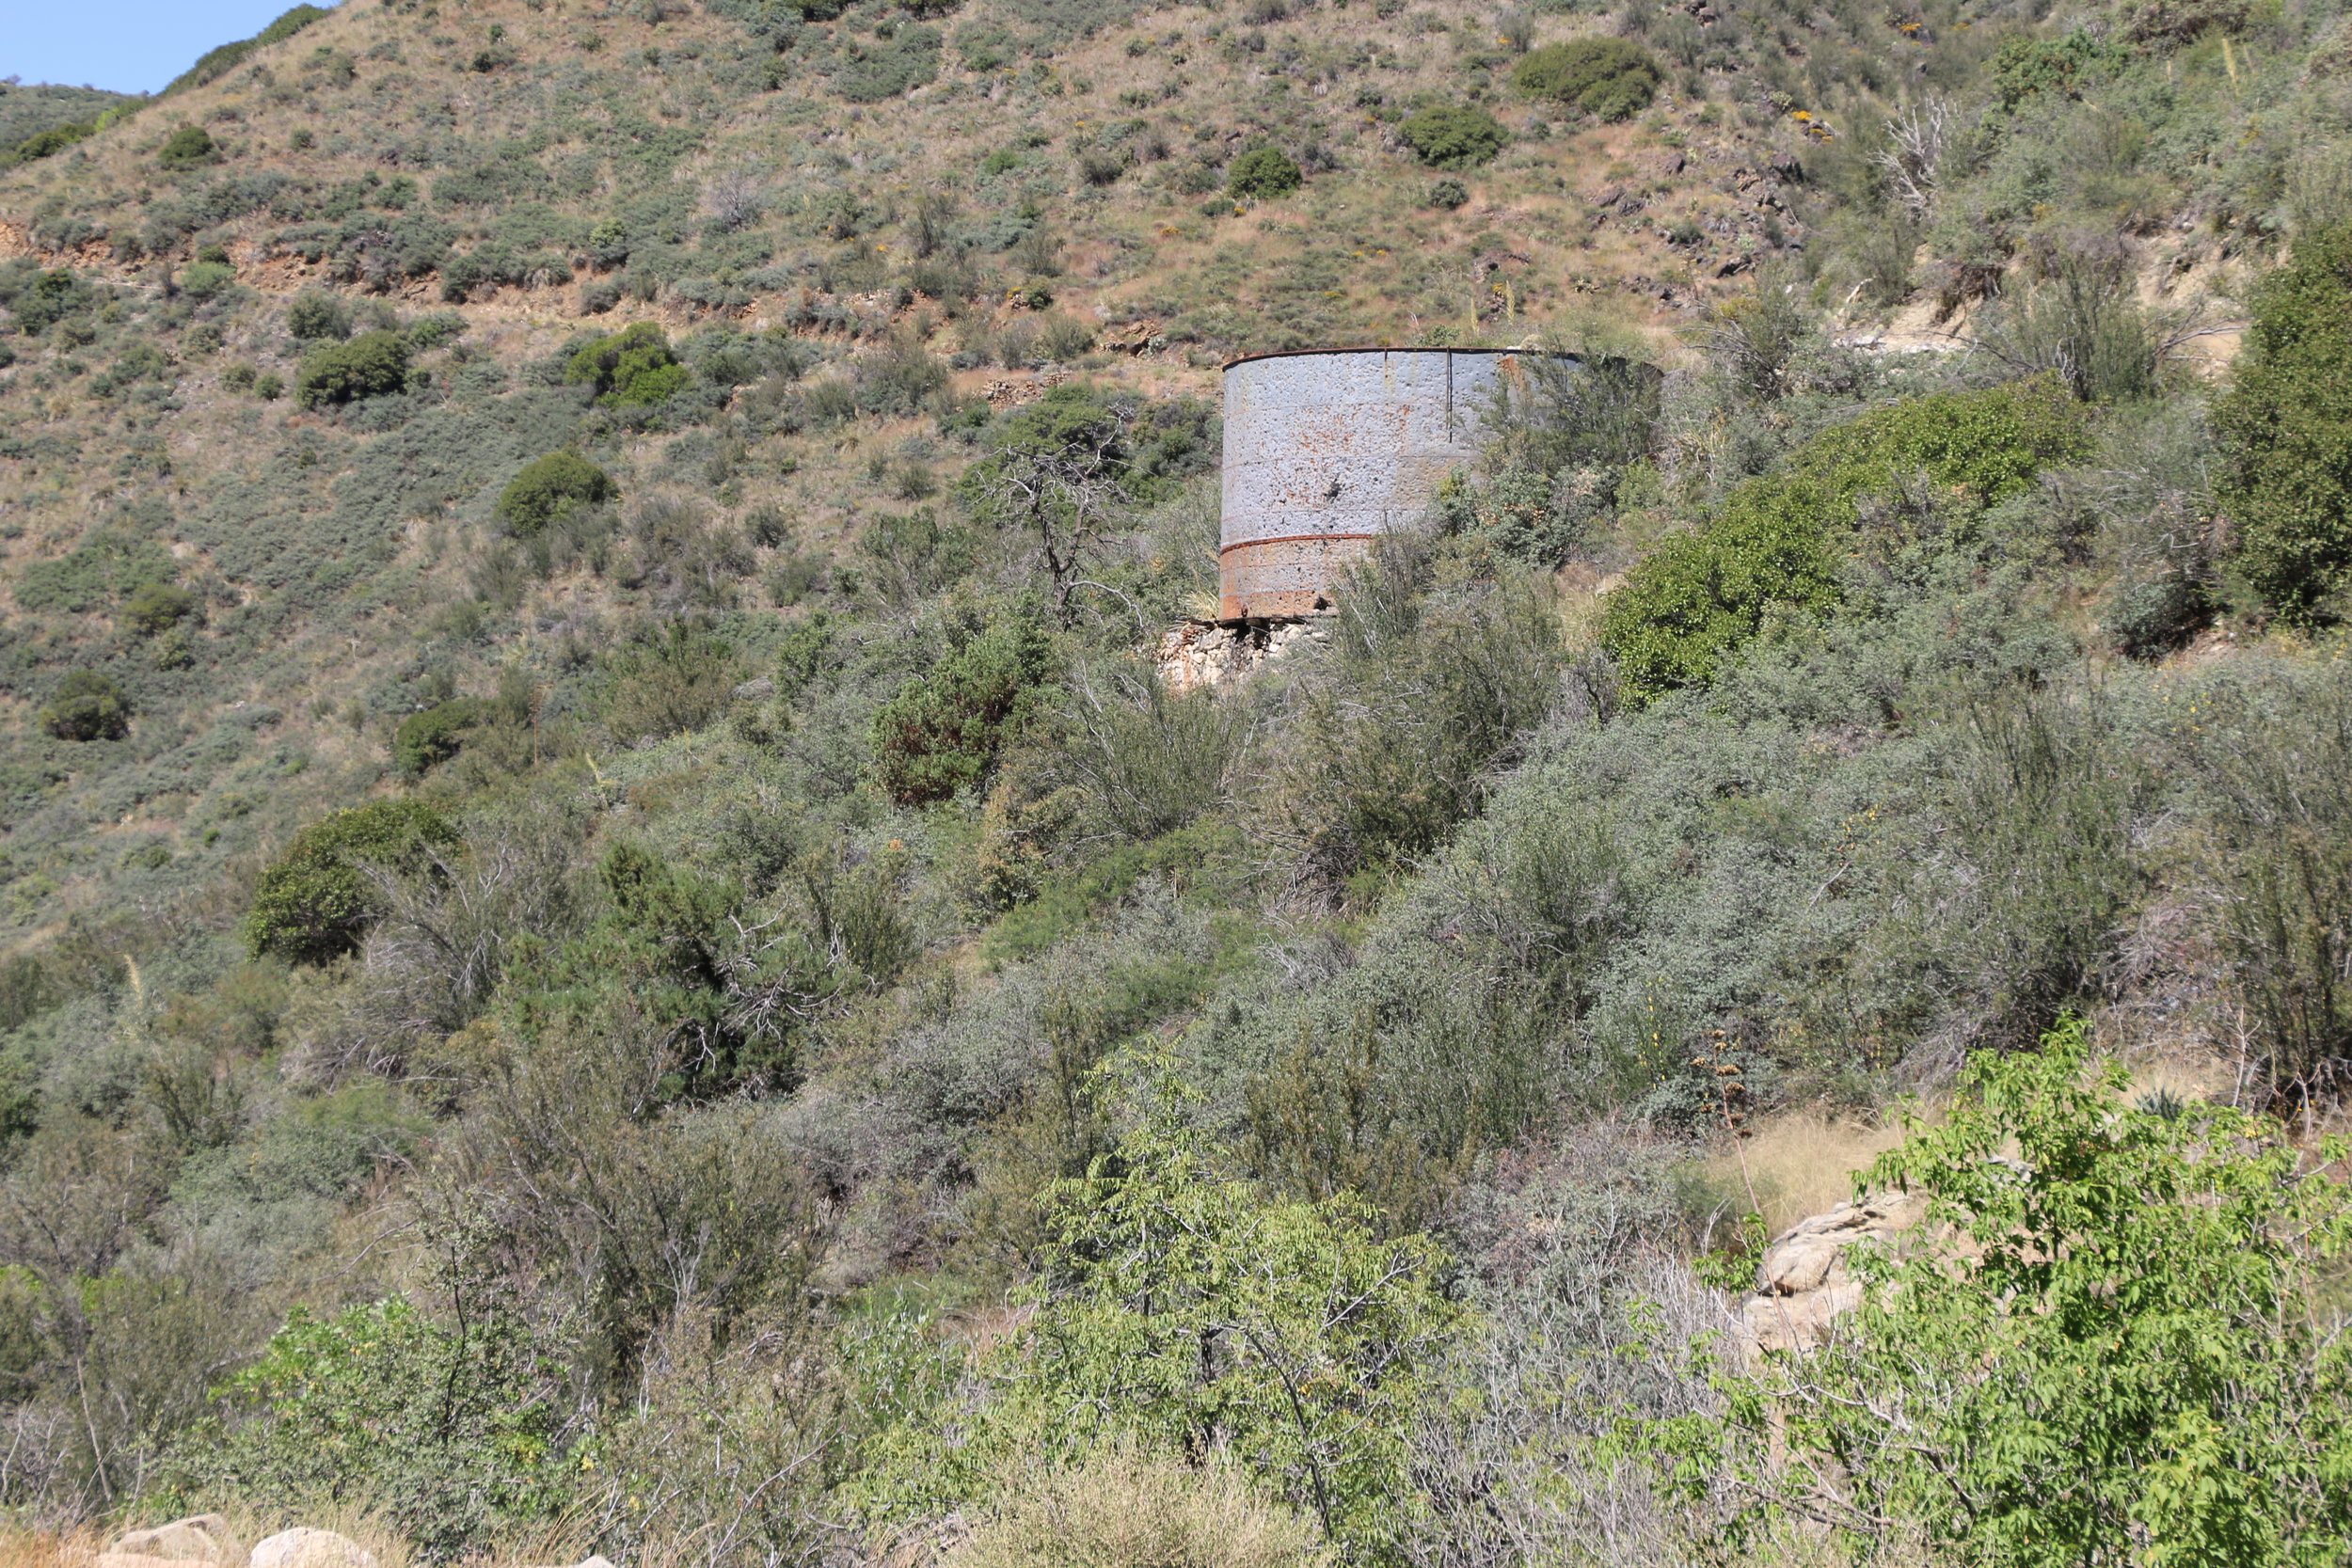 A water tank remains by the trail as it climbs towards Crown King.